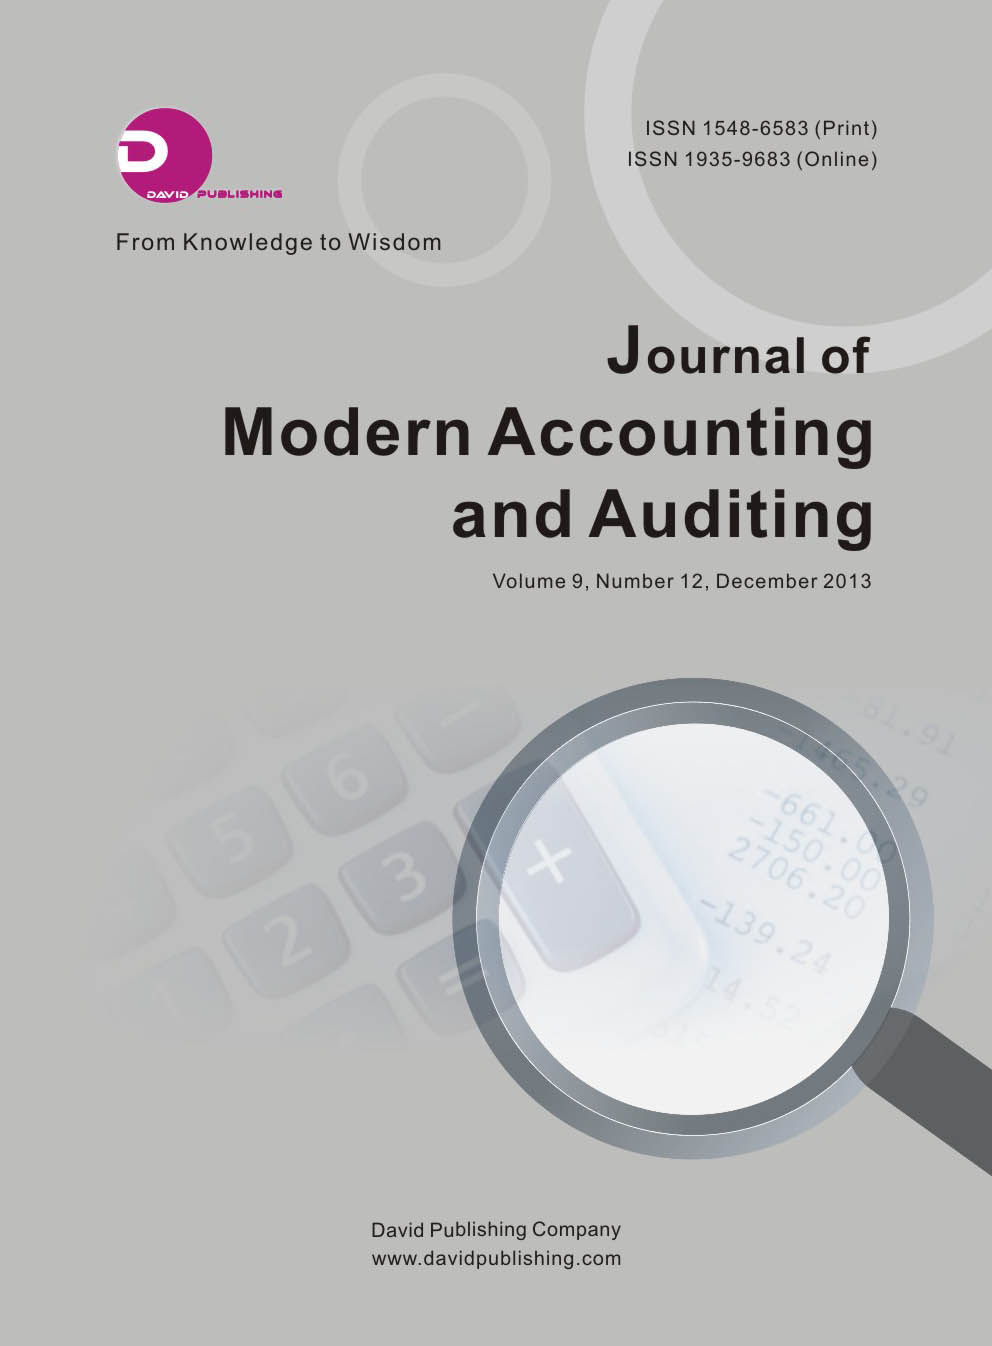 Journal of Modern Accounting and Auditing